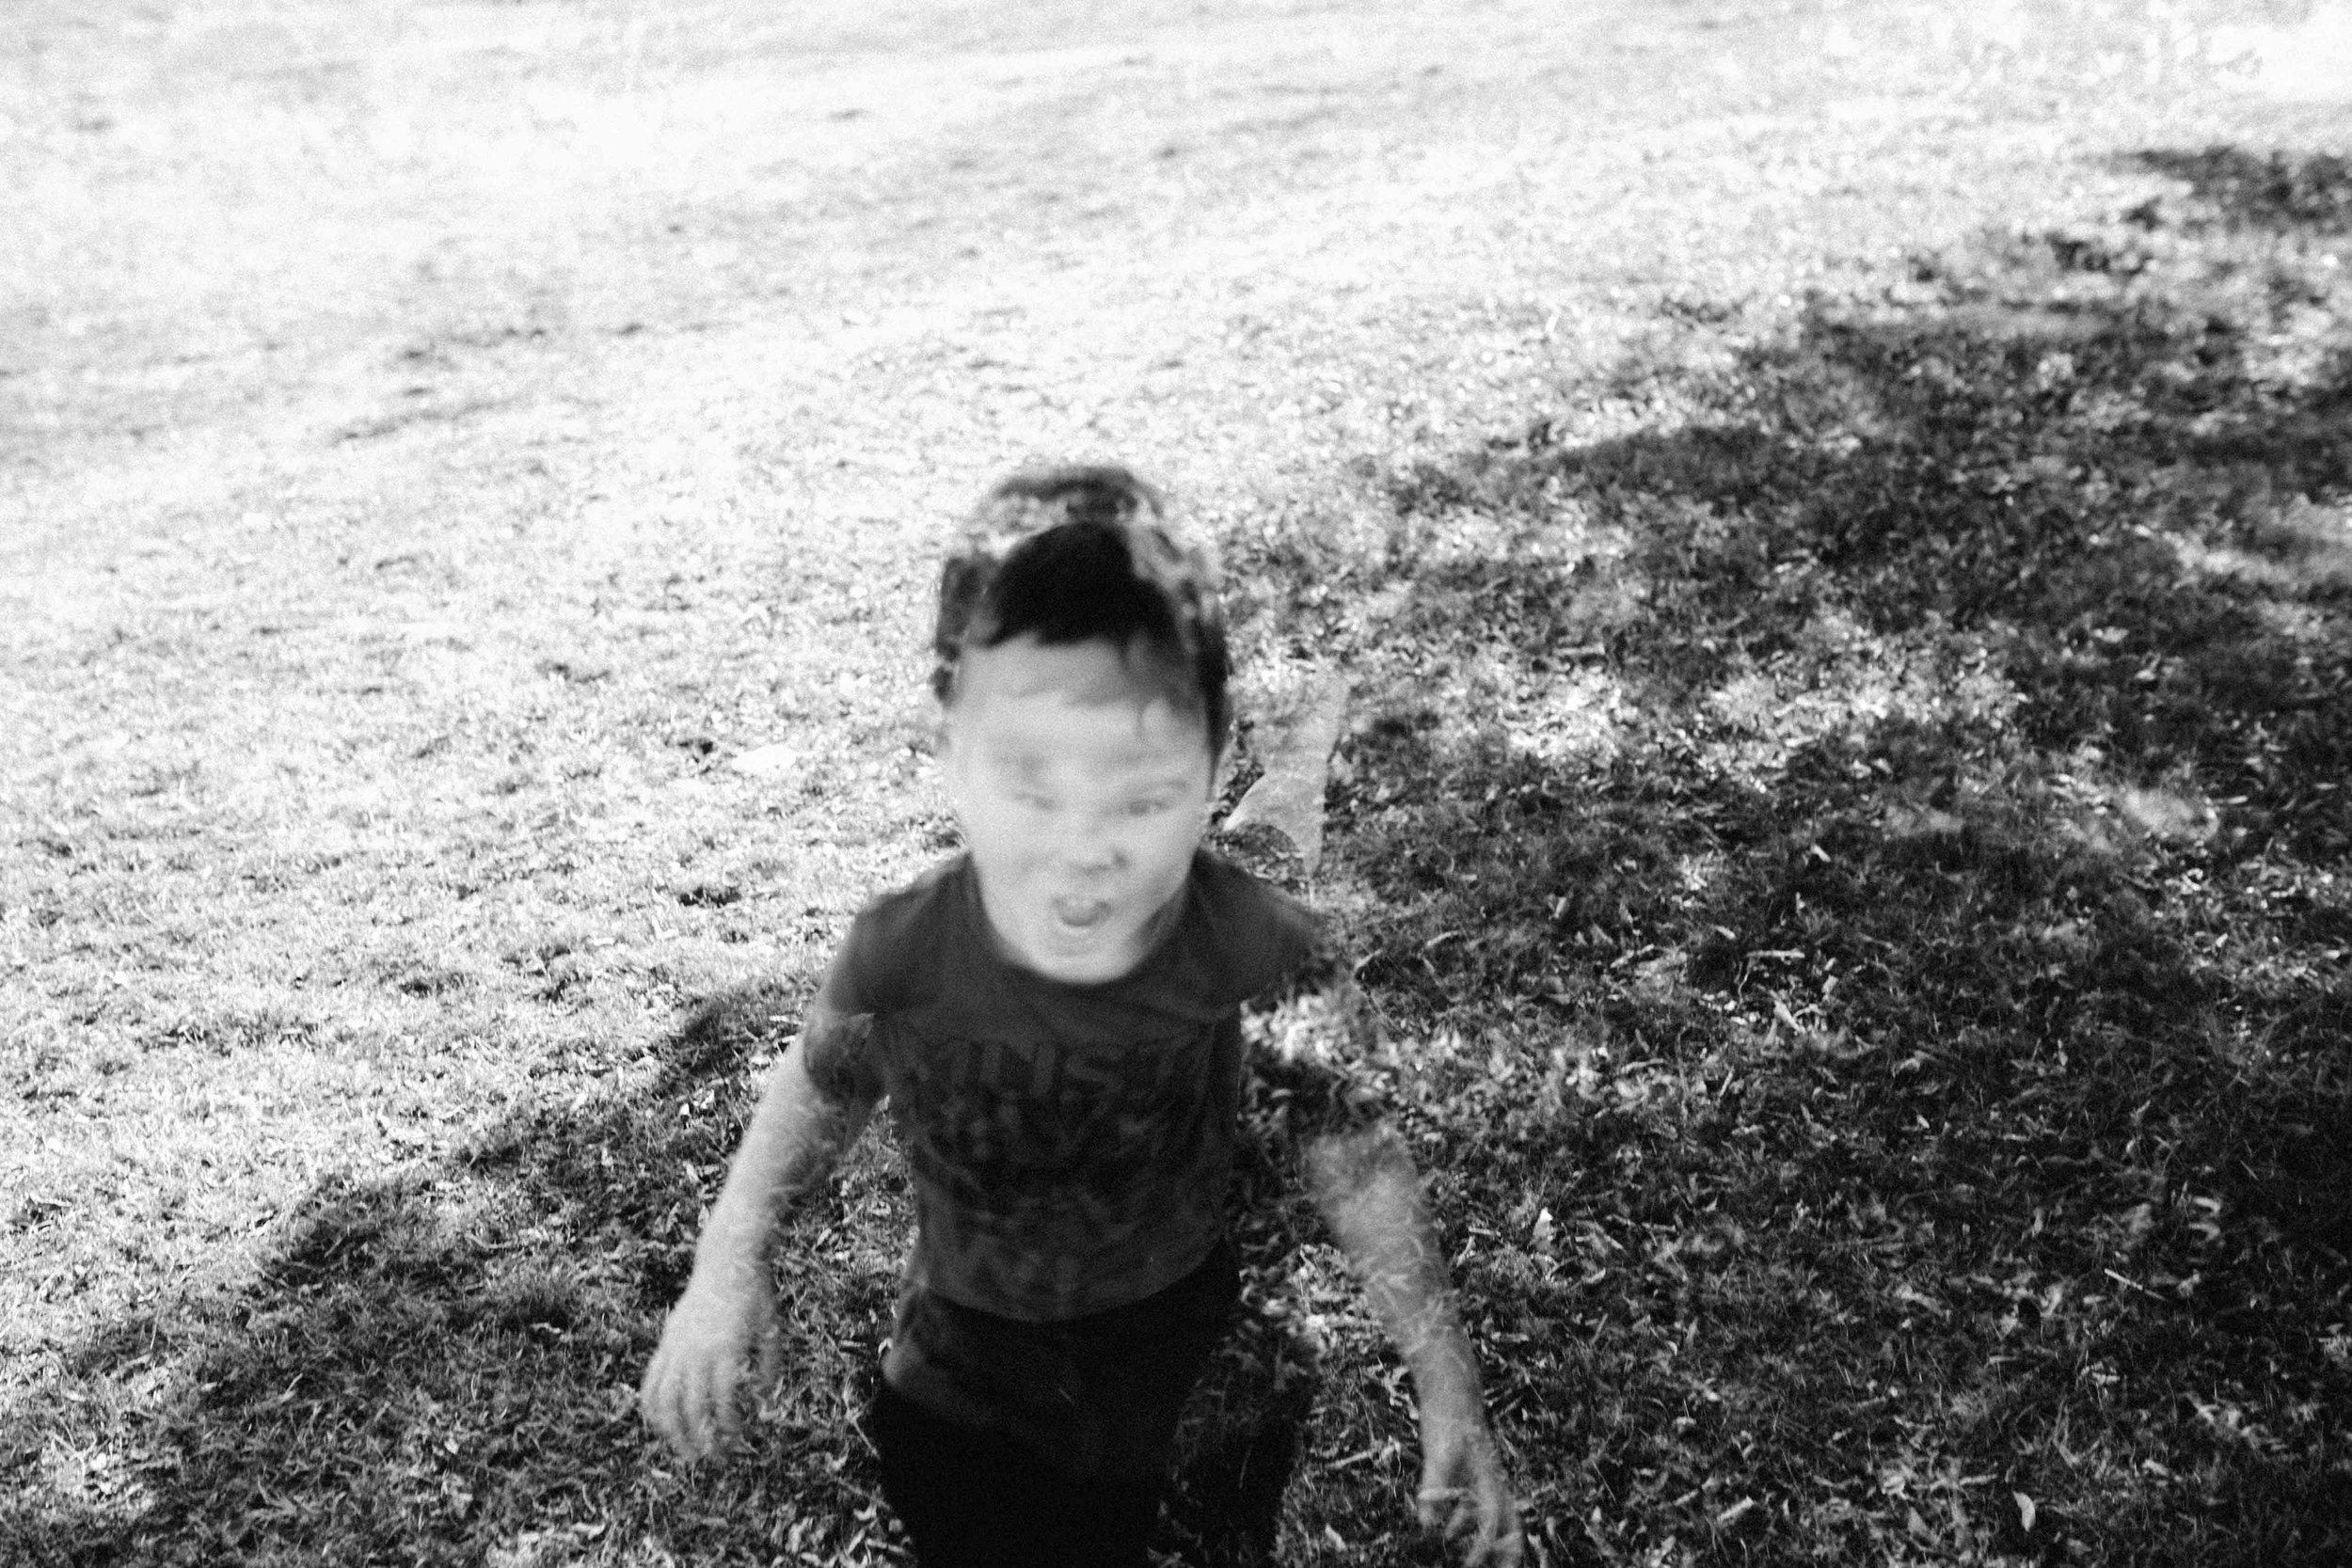 Double exposure of boy in black and white